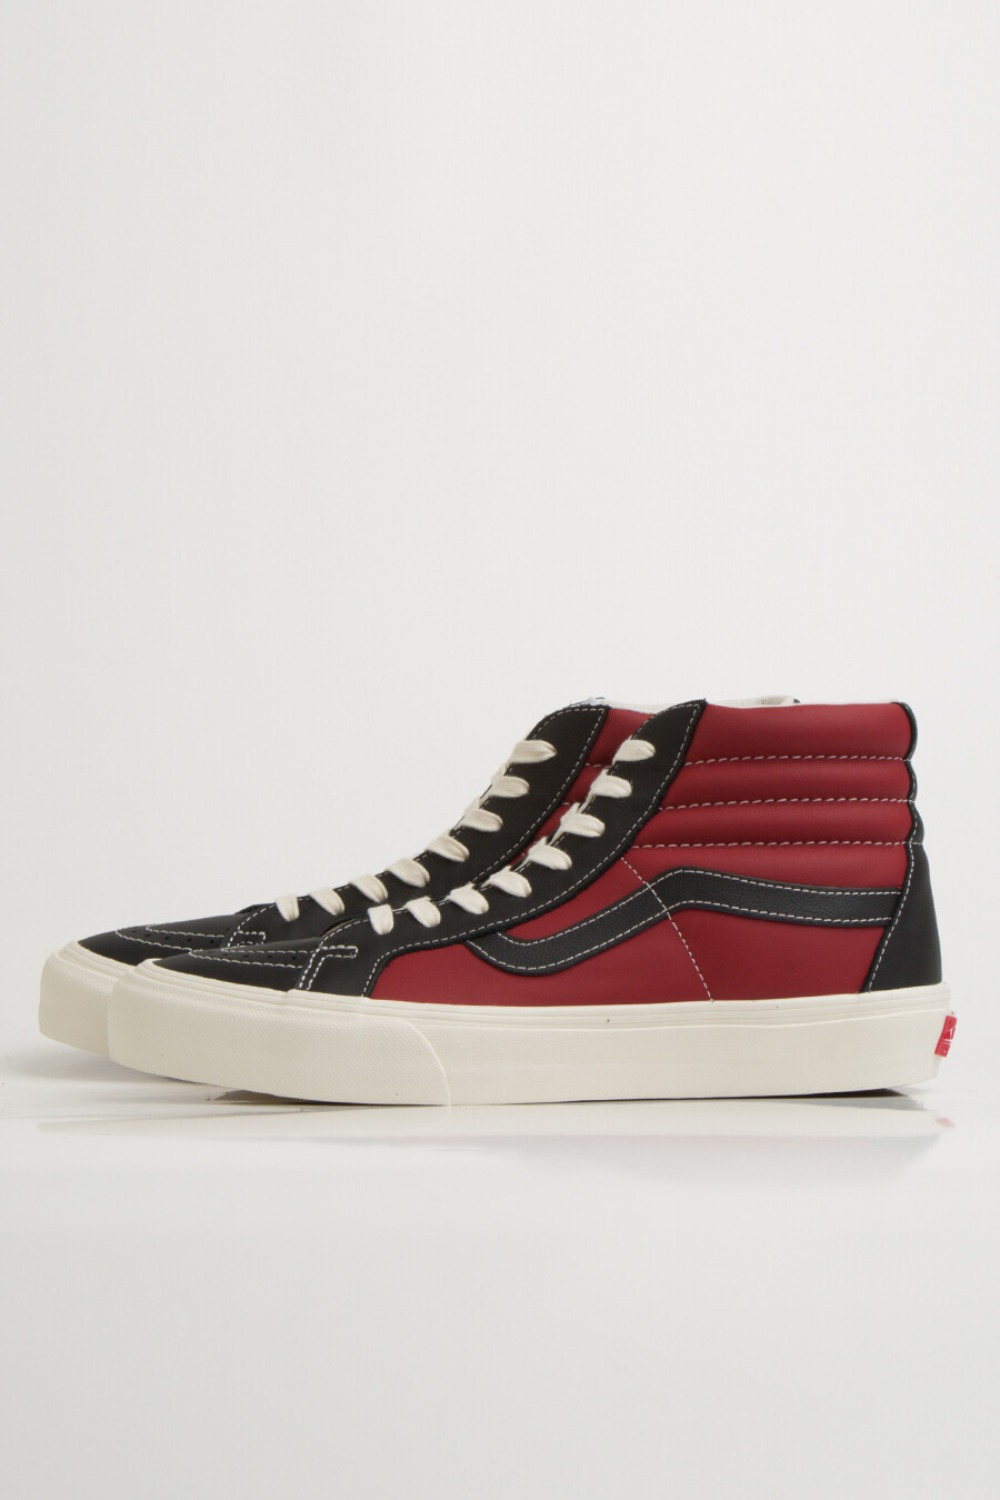 SK8-HI REISSUE VLT LX(LEATHER)BLACK/CHILLI PEPPER